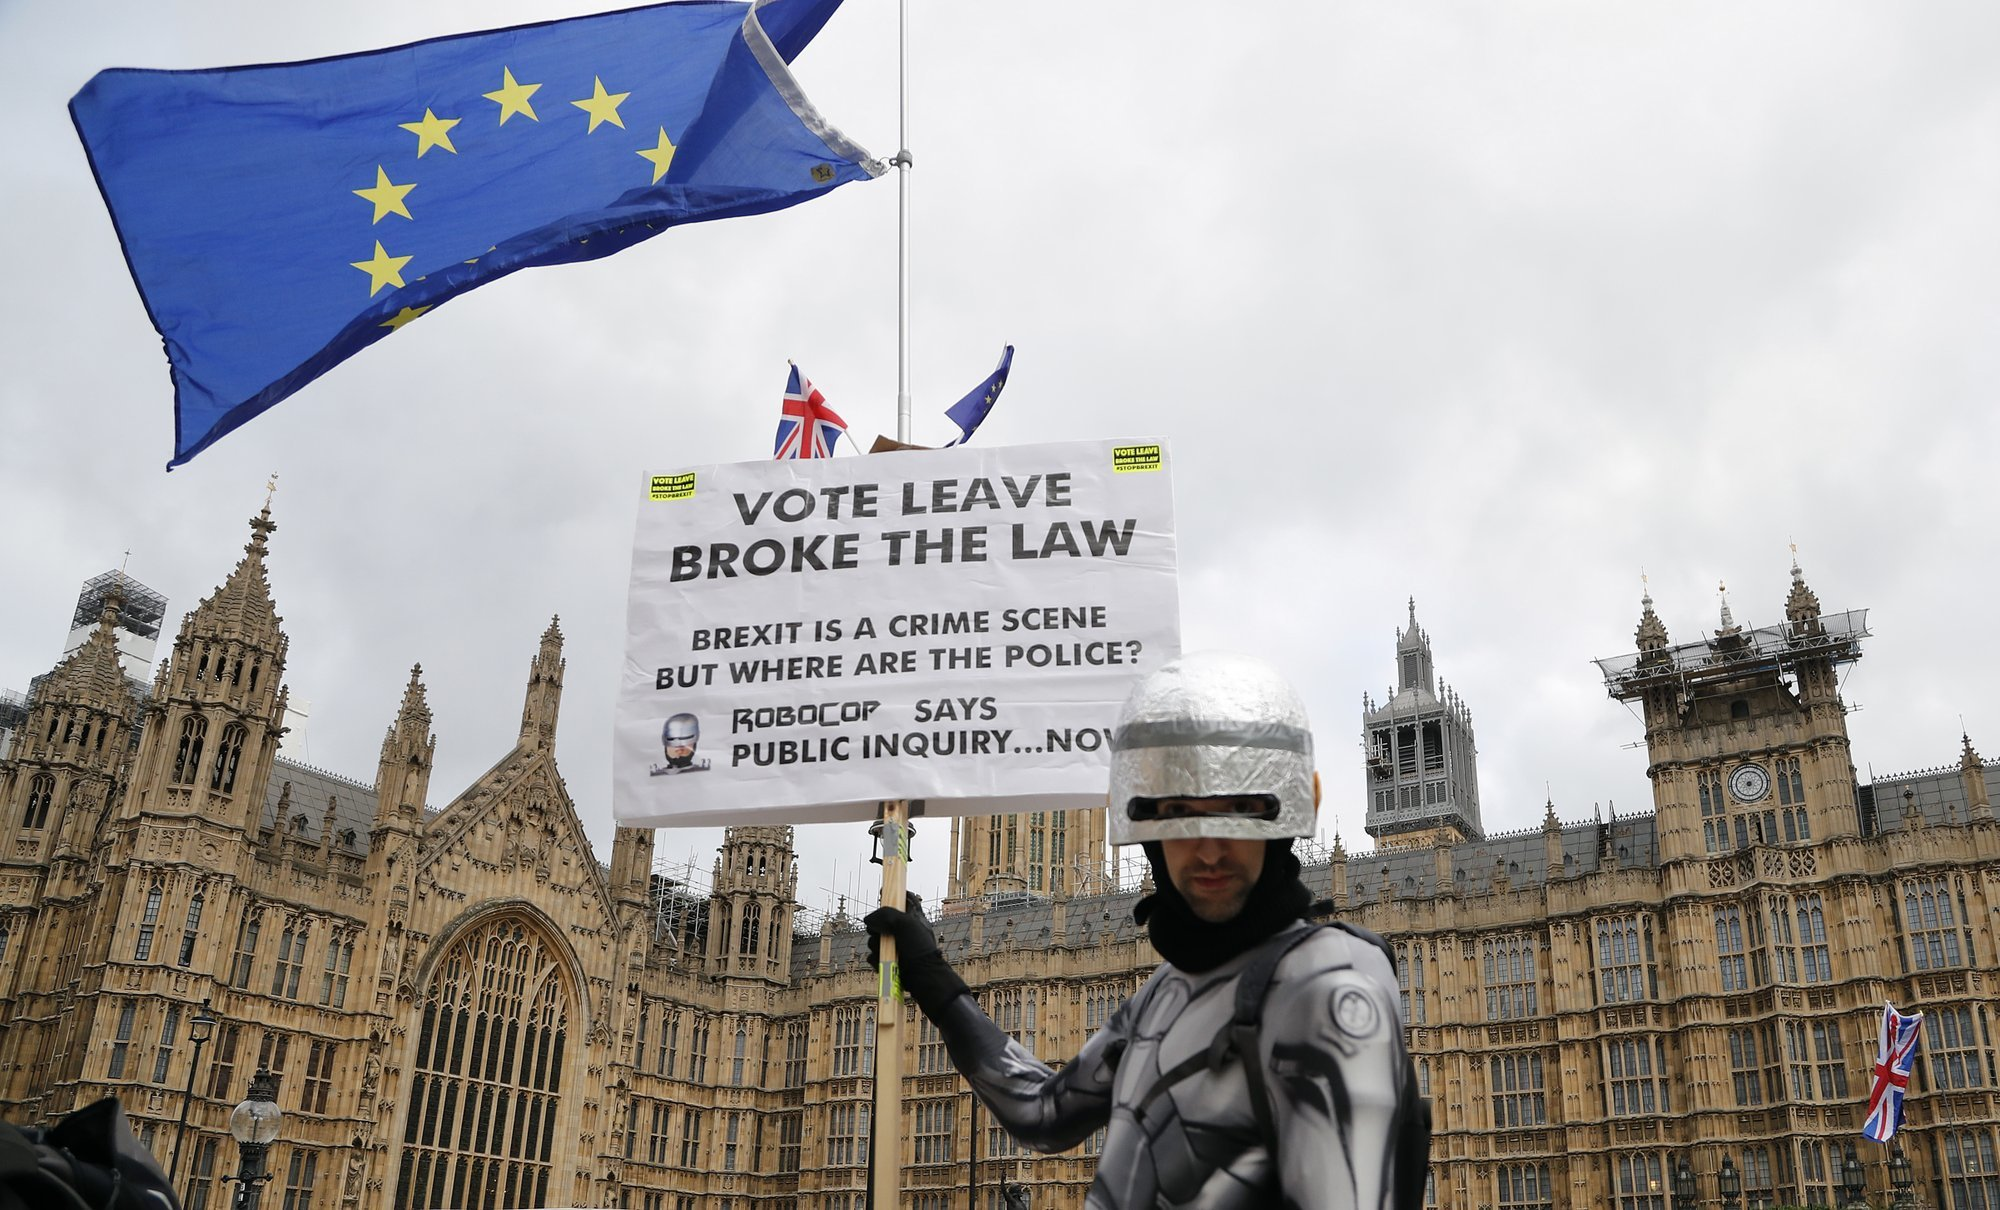 A protestor dressed as a robot demonstrates opposite the Houses of Parliament as Pro-European demonstrators protest in London on Monday. — AFP